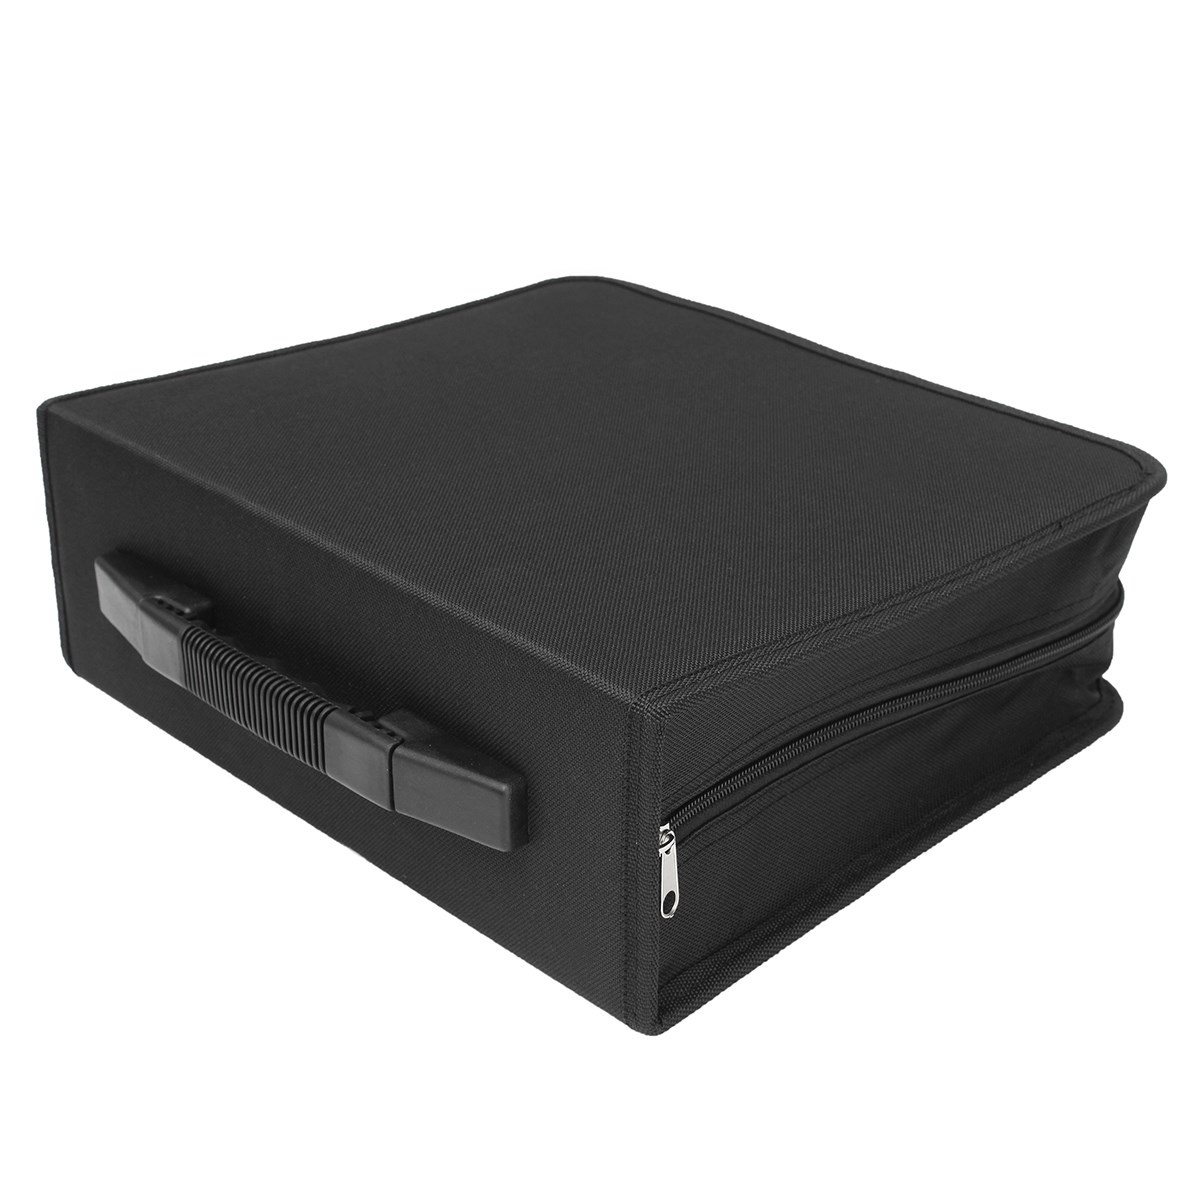 Oxford Cloth Large 288 Disc CD DVD Storage Box Case Carry Bag Binder Book  Sleeves Rack Holder Home Room Discs Organizer In Storage Boxes U0026 Bins From  Home ...